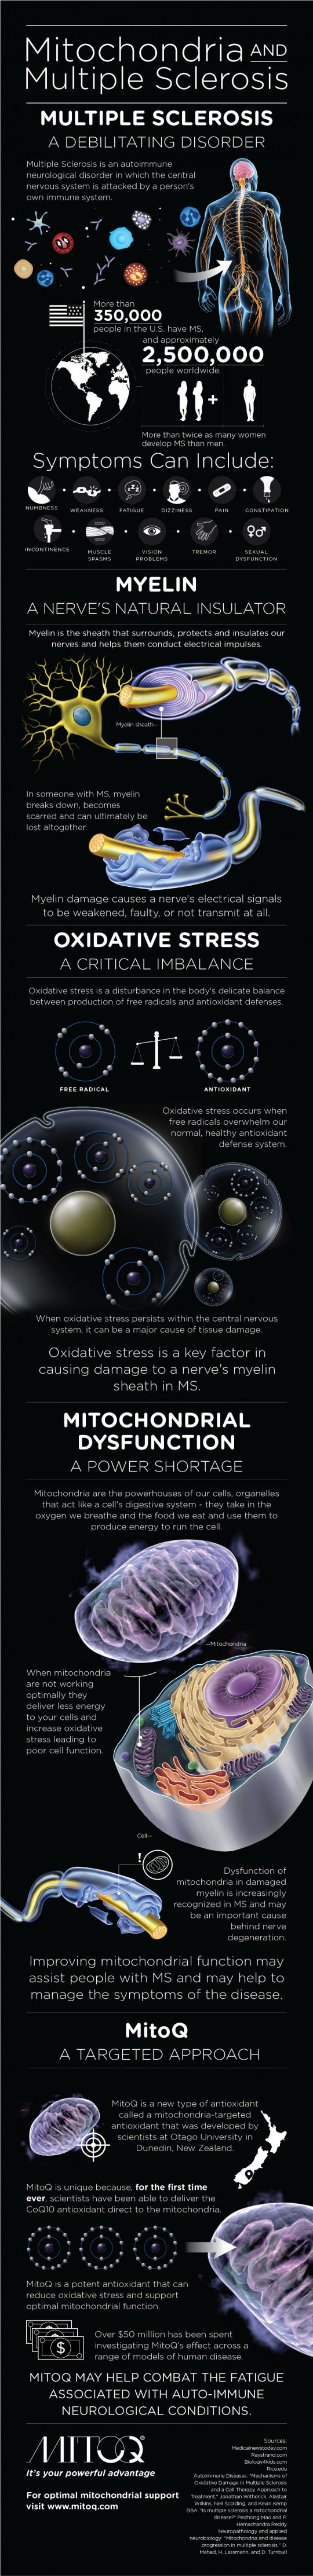 Mitochondria and Multiple Sclerosis